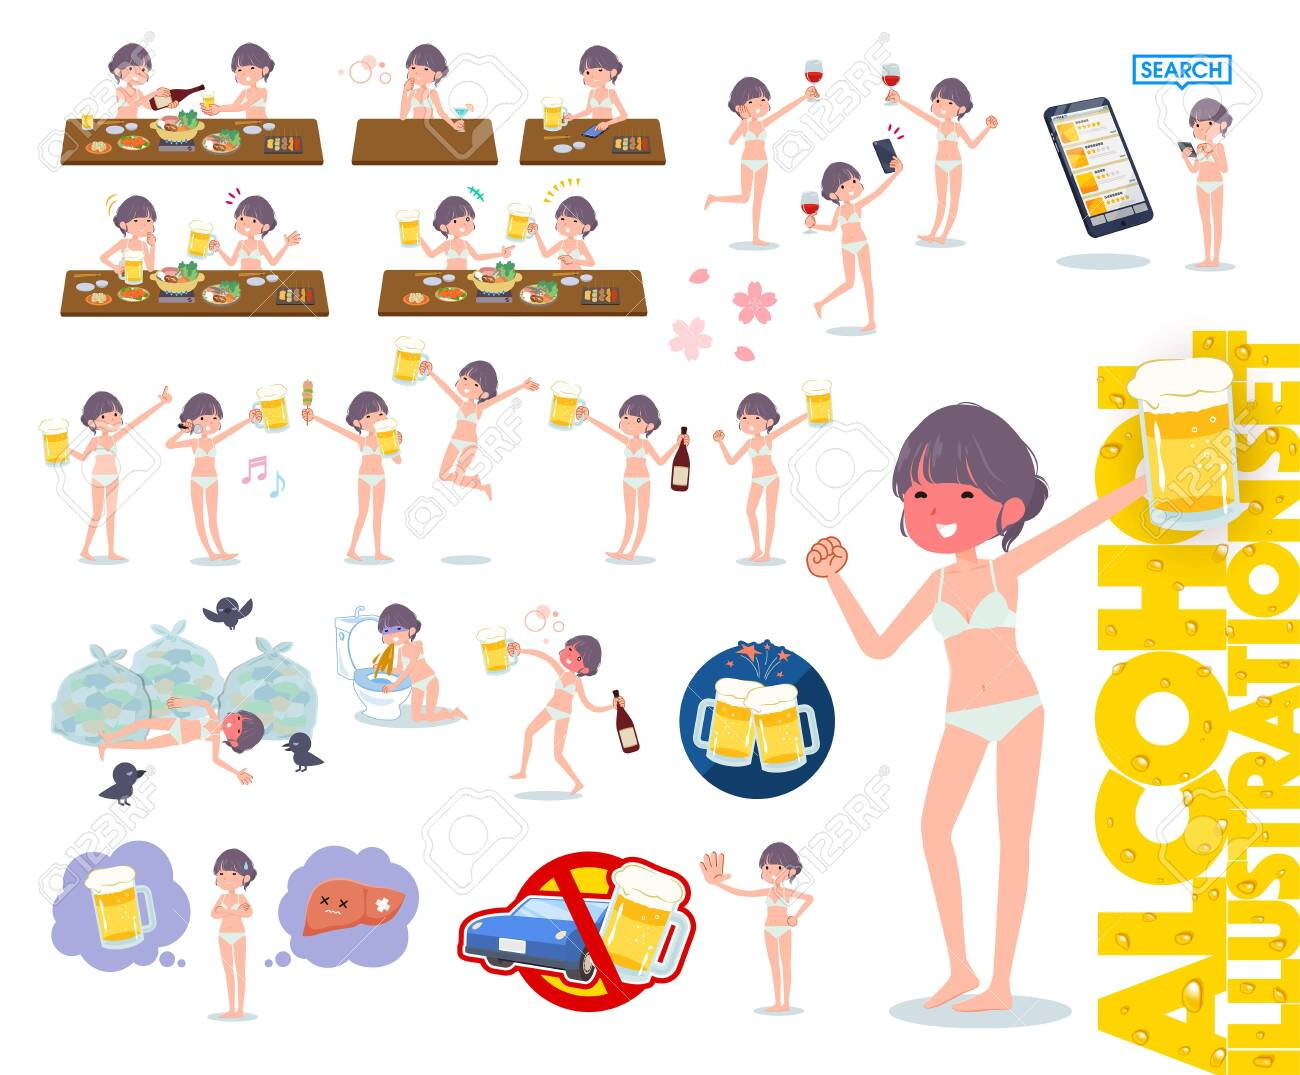 A set of women in underwear related to alcohol.There is a lively appearance and action that expresses failure about alcohol.It's vector art so it's easy to edit. - 143366074